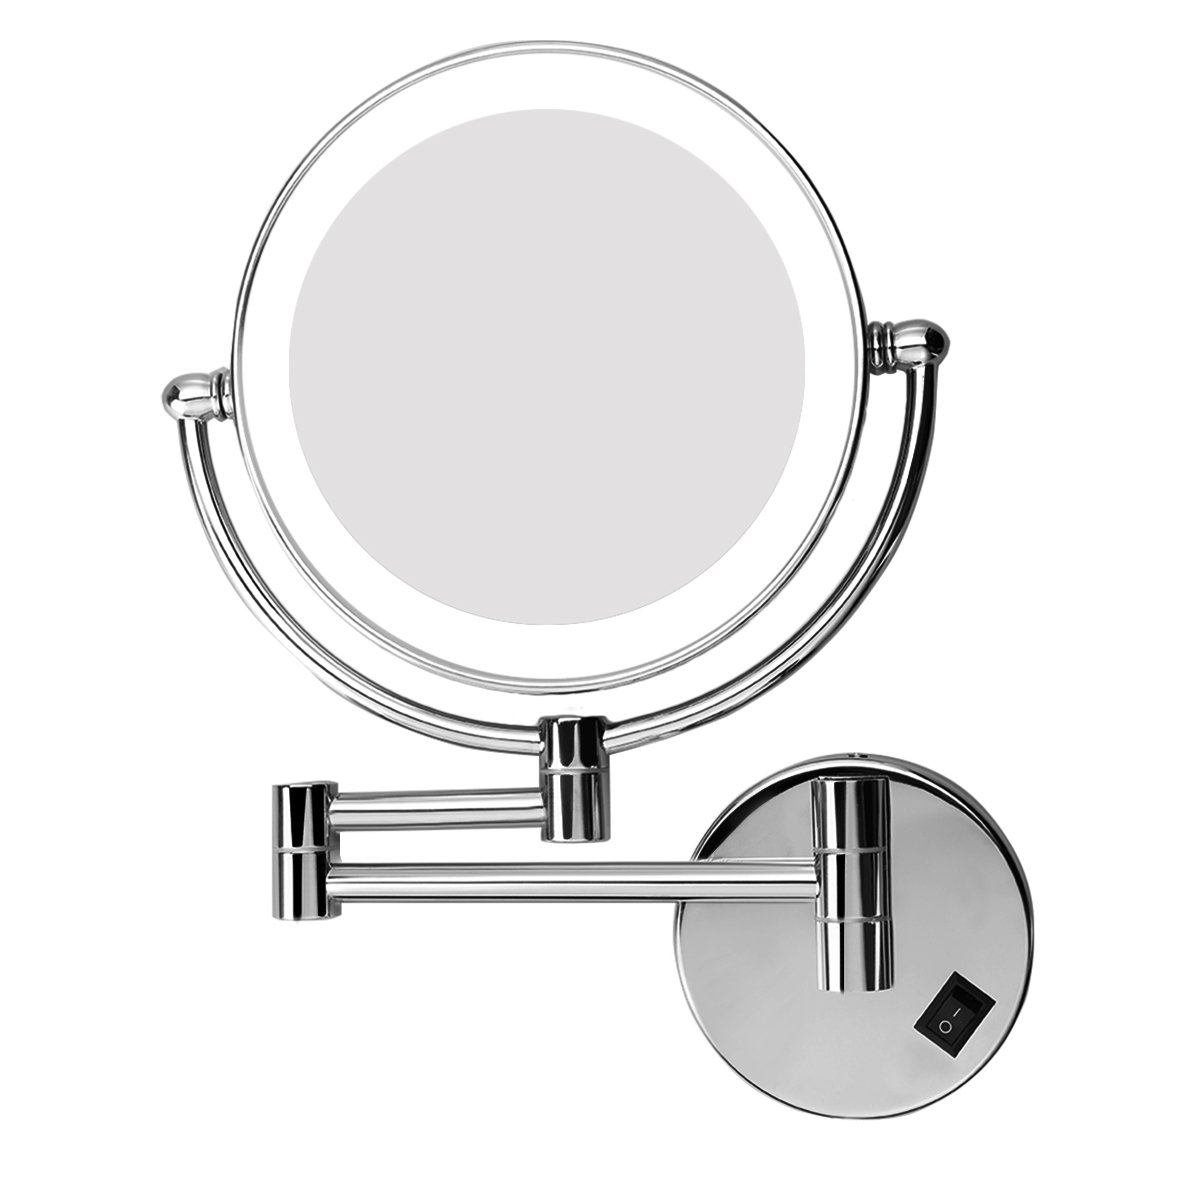 Excelvan 7x Magnification Wall Mount MakeUp Vanity Mirror with LED Light, Polished Chrome Finish and 8 Inch Double Sided Swivel